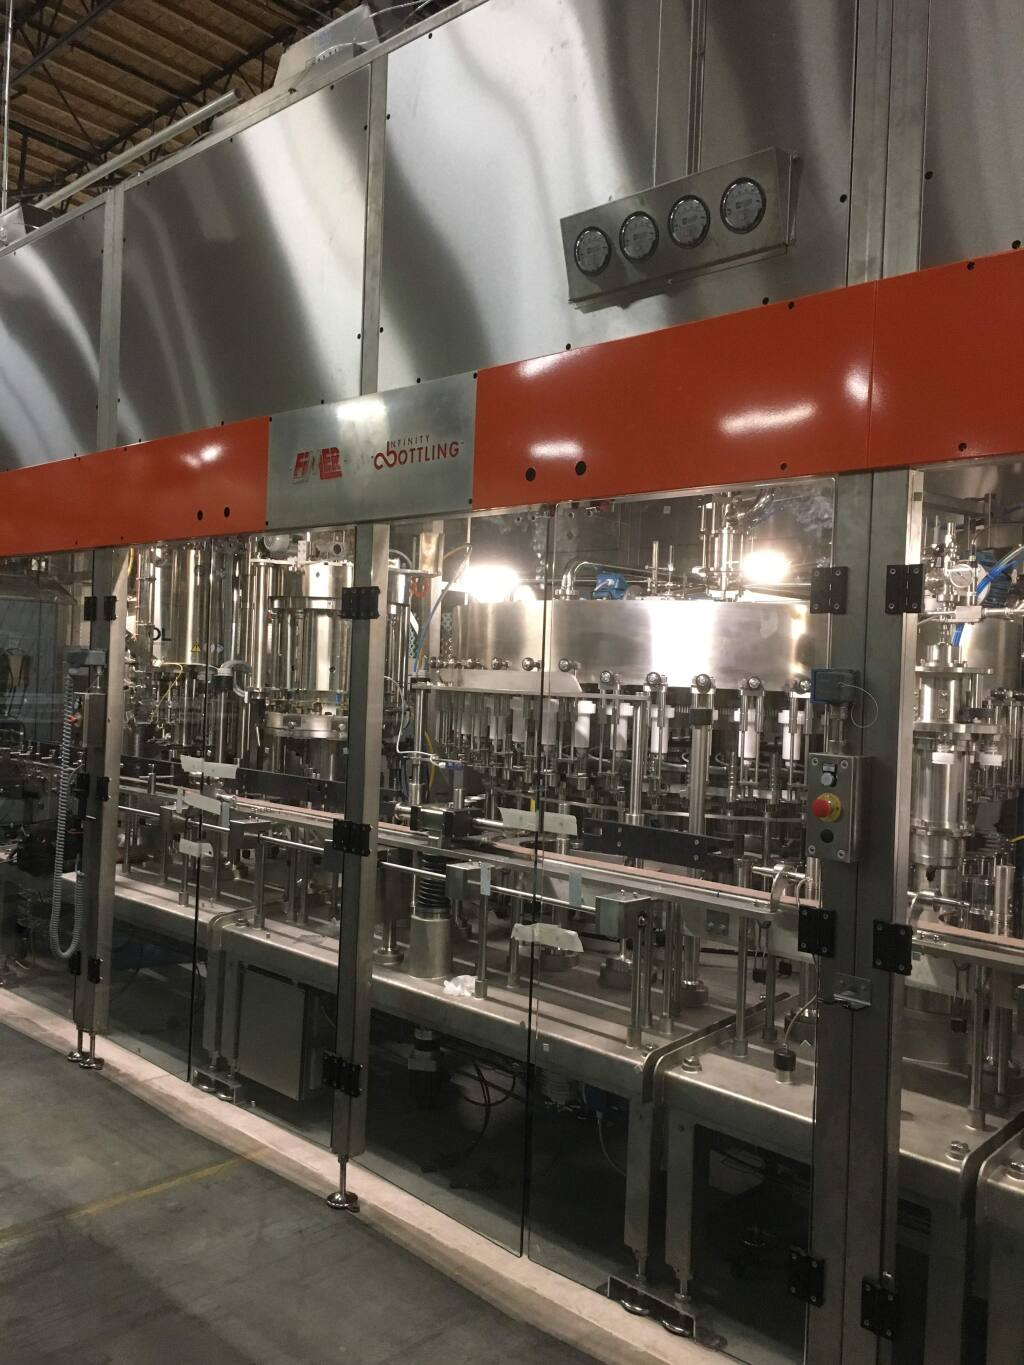 Infinity Bottling opens its new facility in Napa Valley's American Canyon in July 2018. (DAVID DAVENPORT)